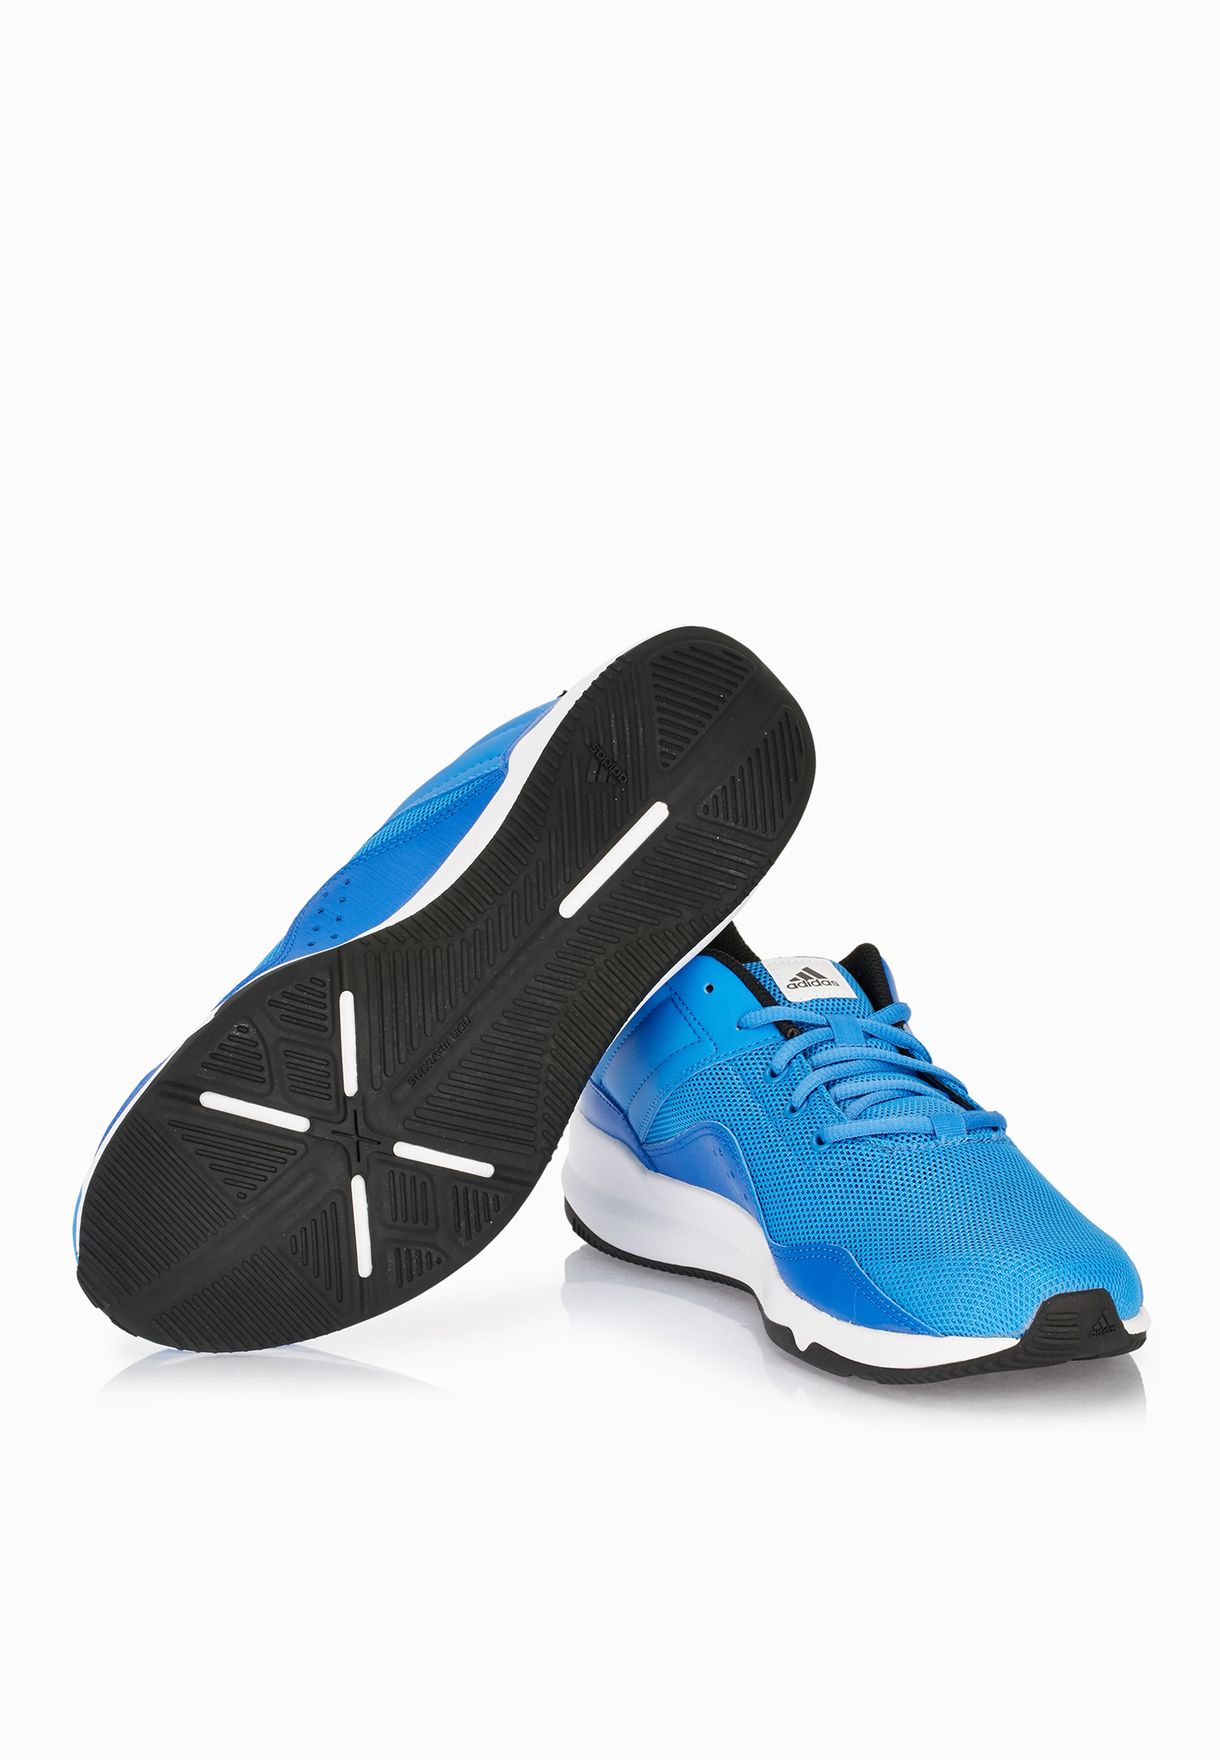 cheap for discount 7d8a4 5f5d9 Shop adidas blue Crazy move CF M AQ6236 for Men in Saudi ...